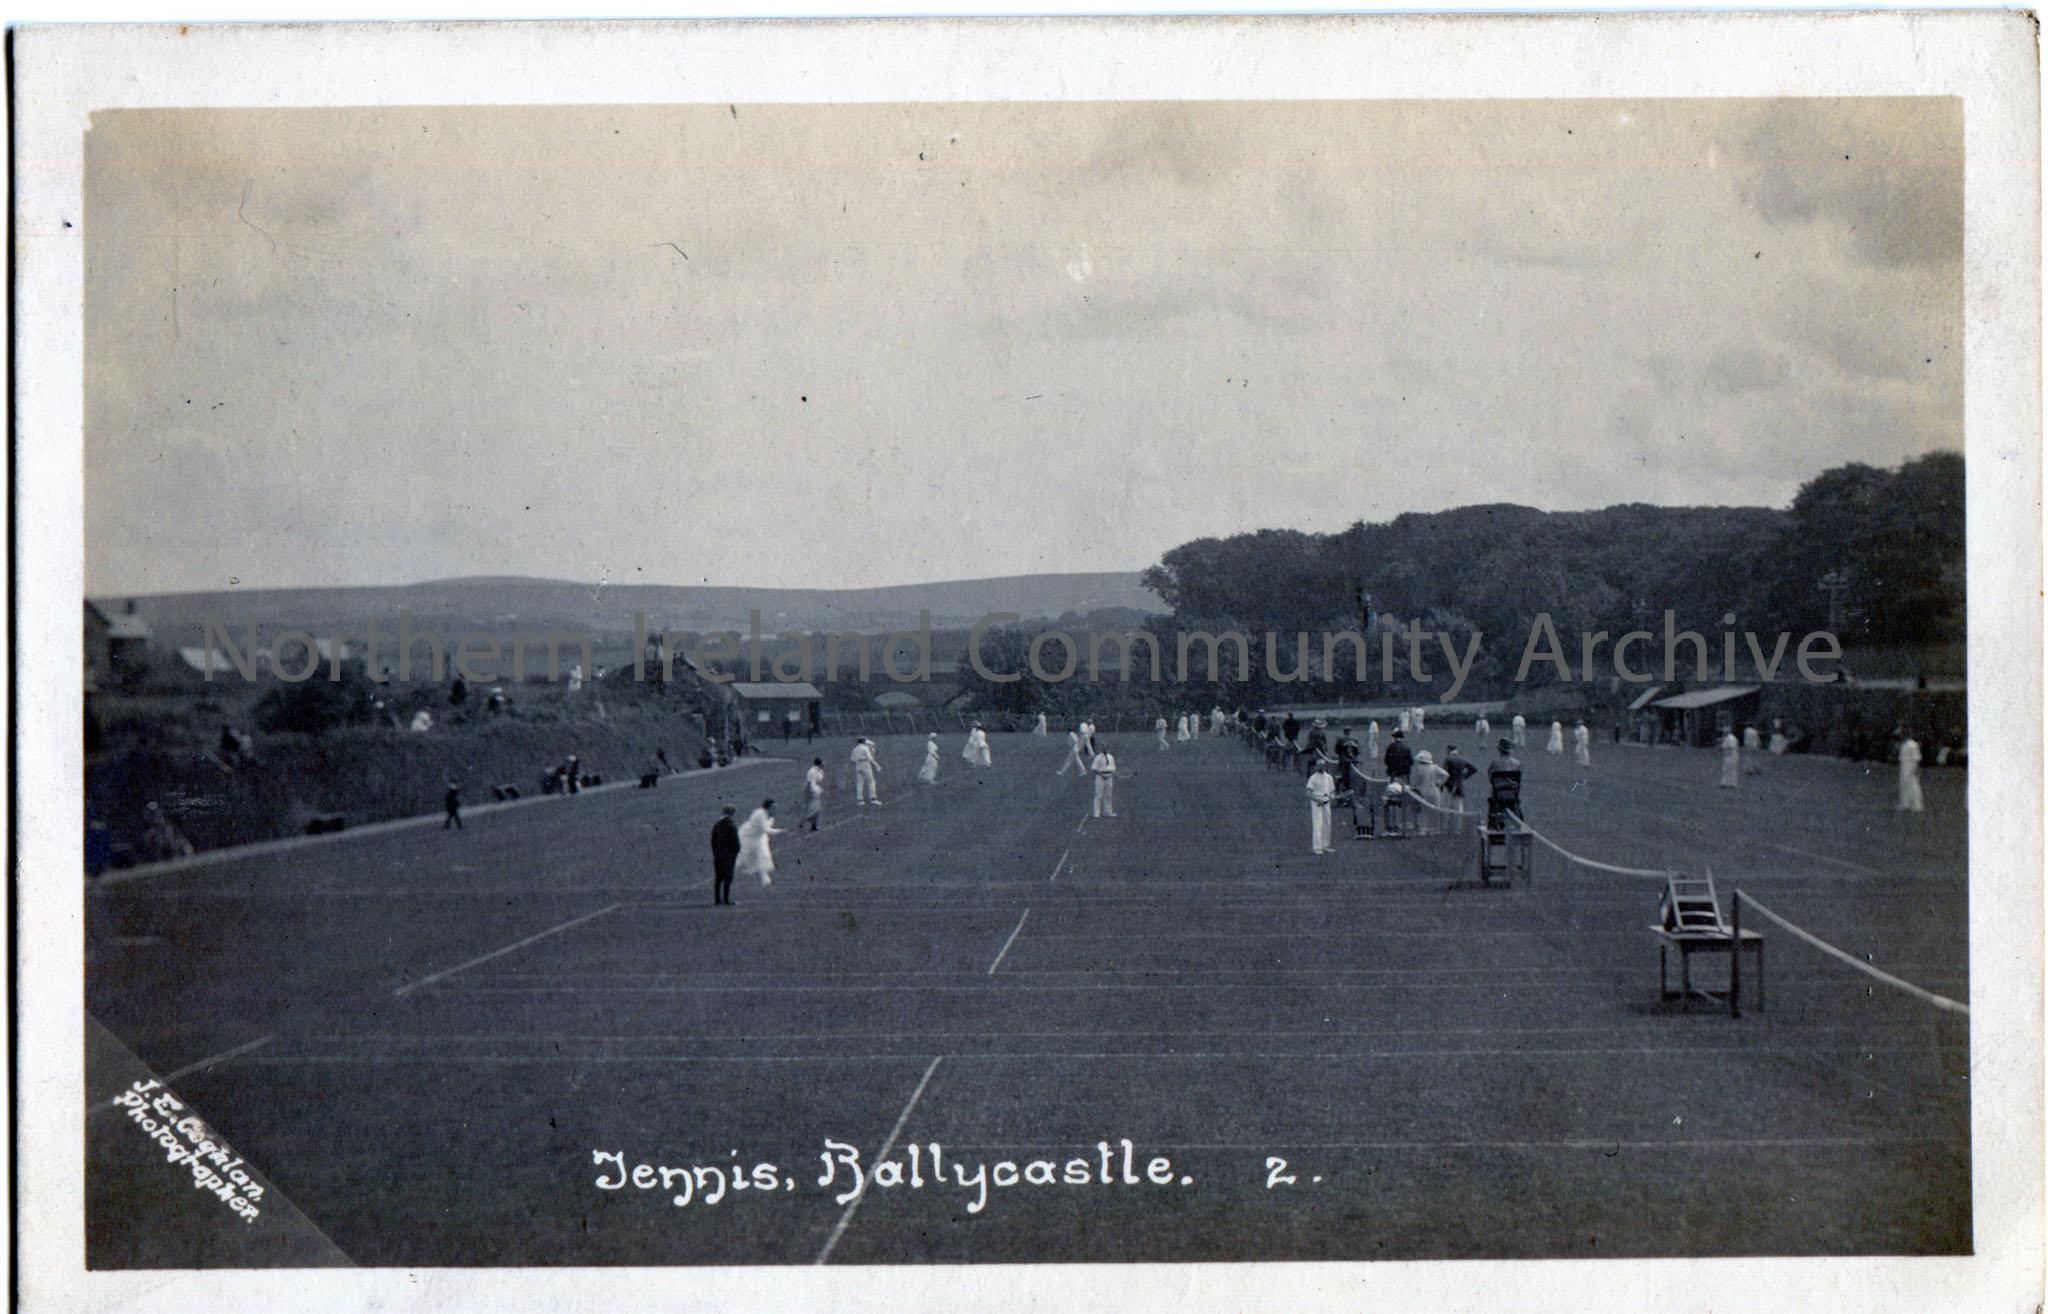 Black and white postcard showing a photograph of 'Tennis, Ballycastle'.